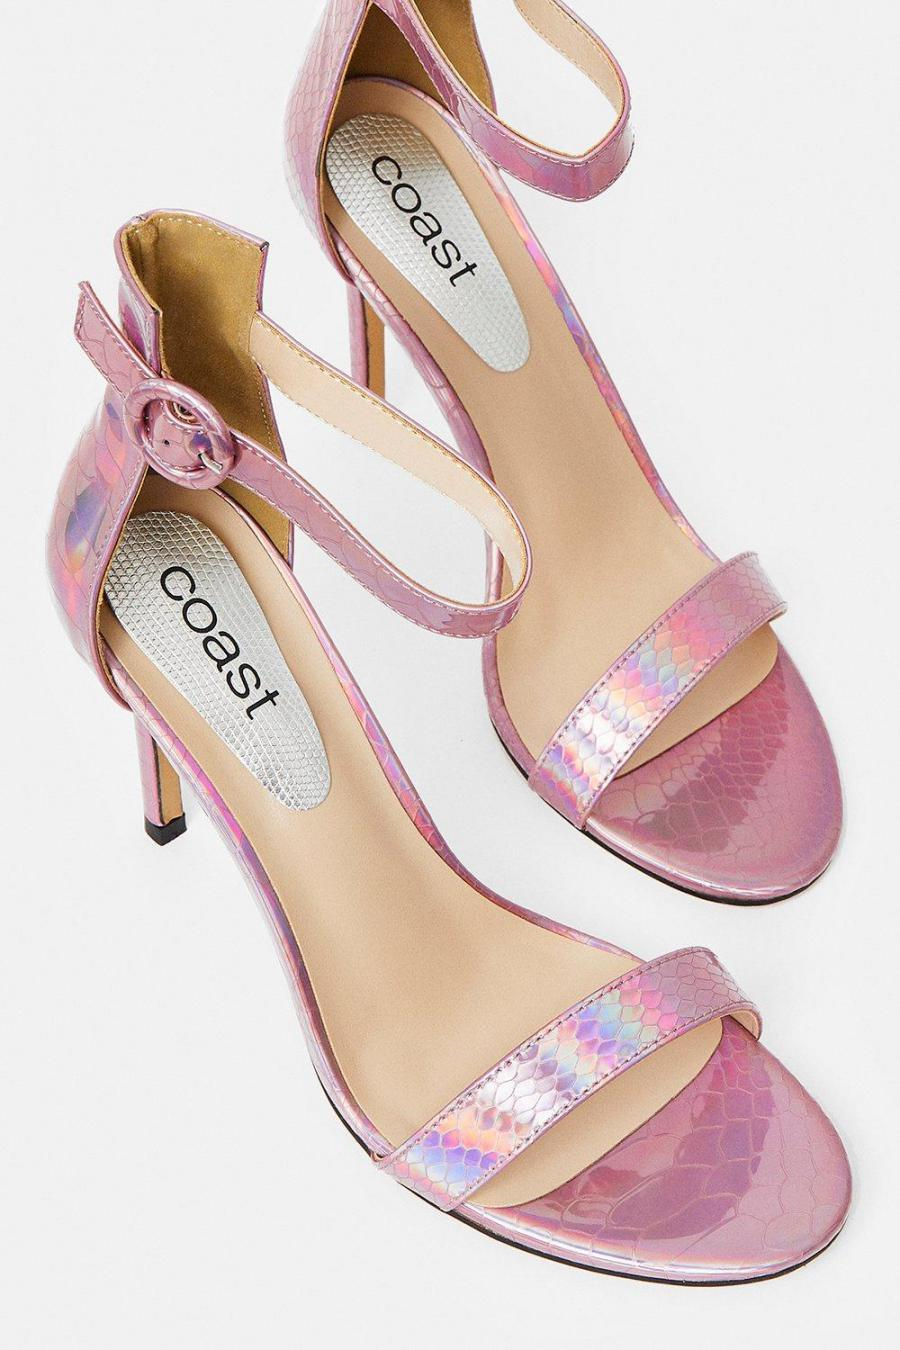 Coast Heeled Sandals | Womens Mini Buckle Ankle Strap Heels Pink